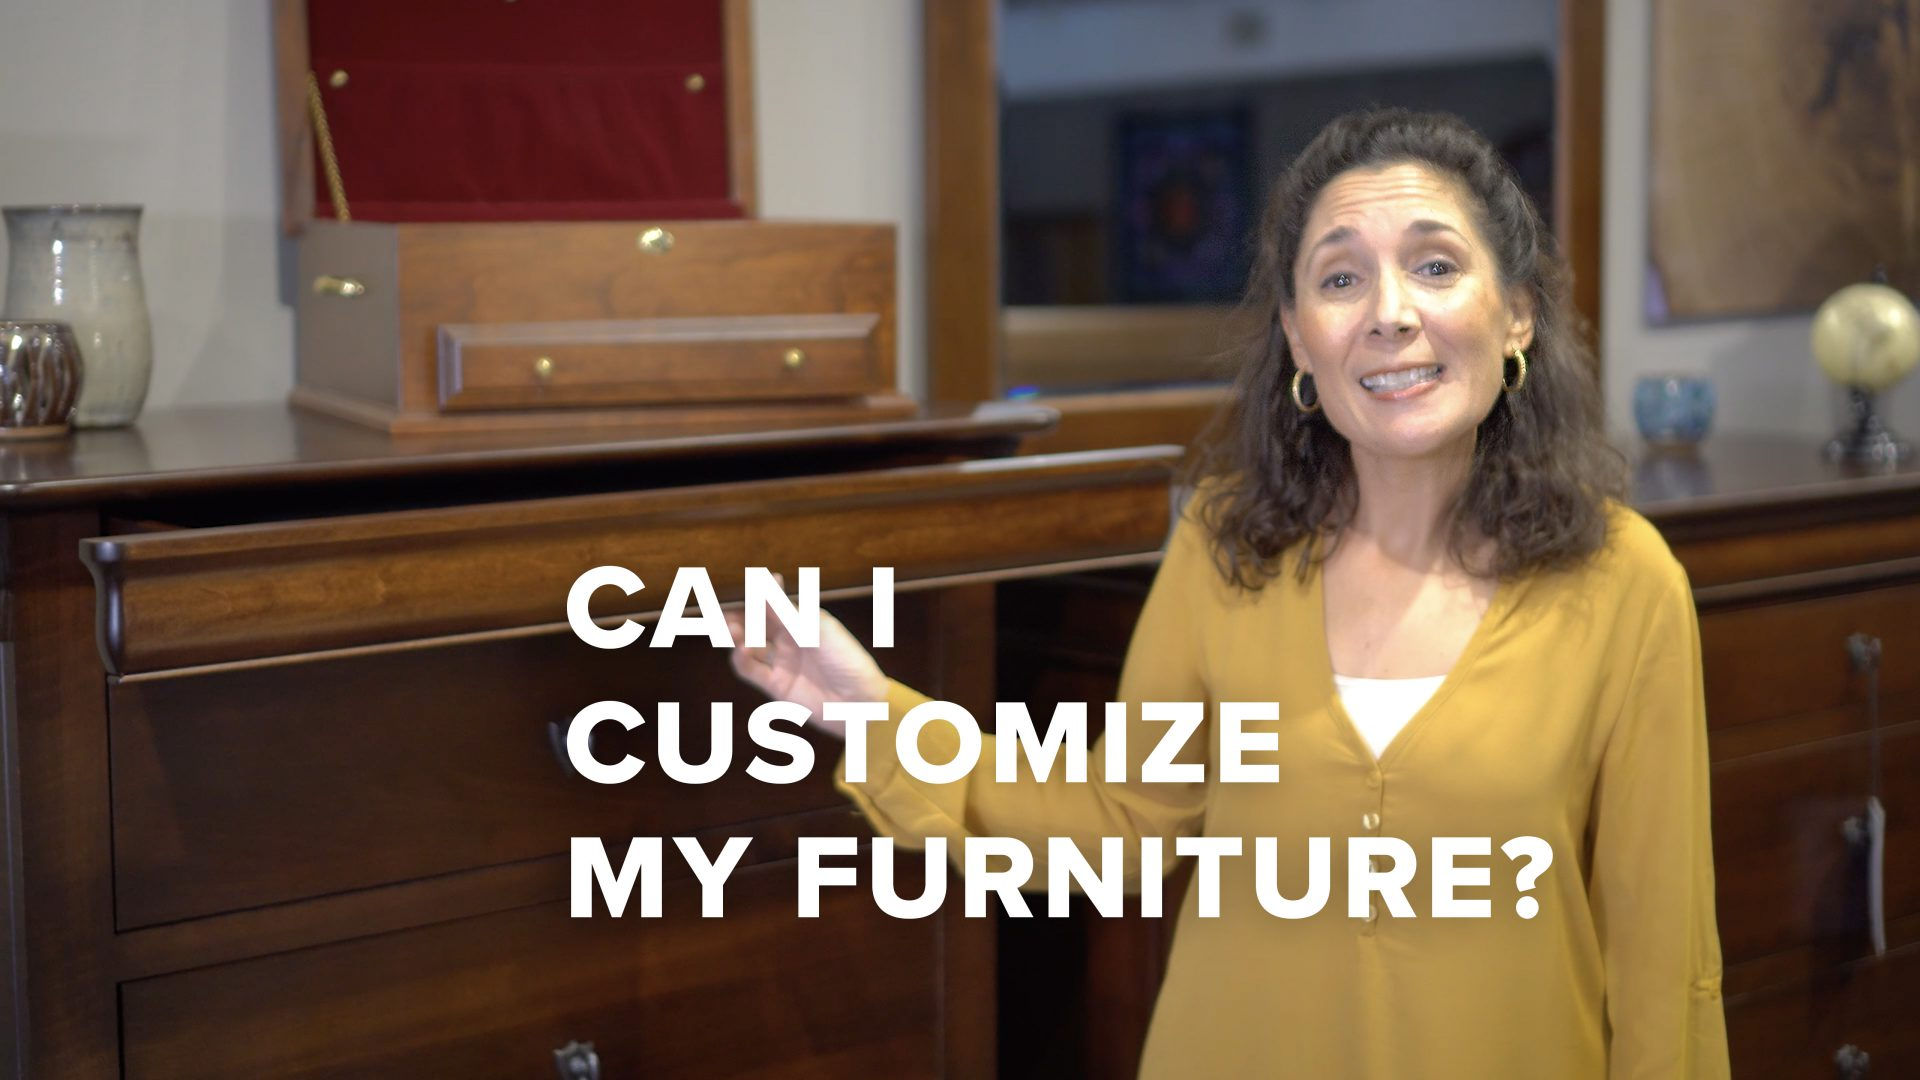 Can I customize my solid wood furniture? Video title image